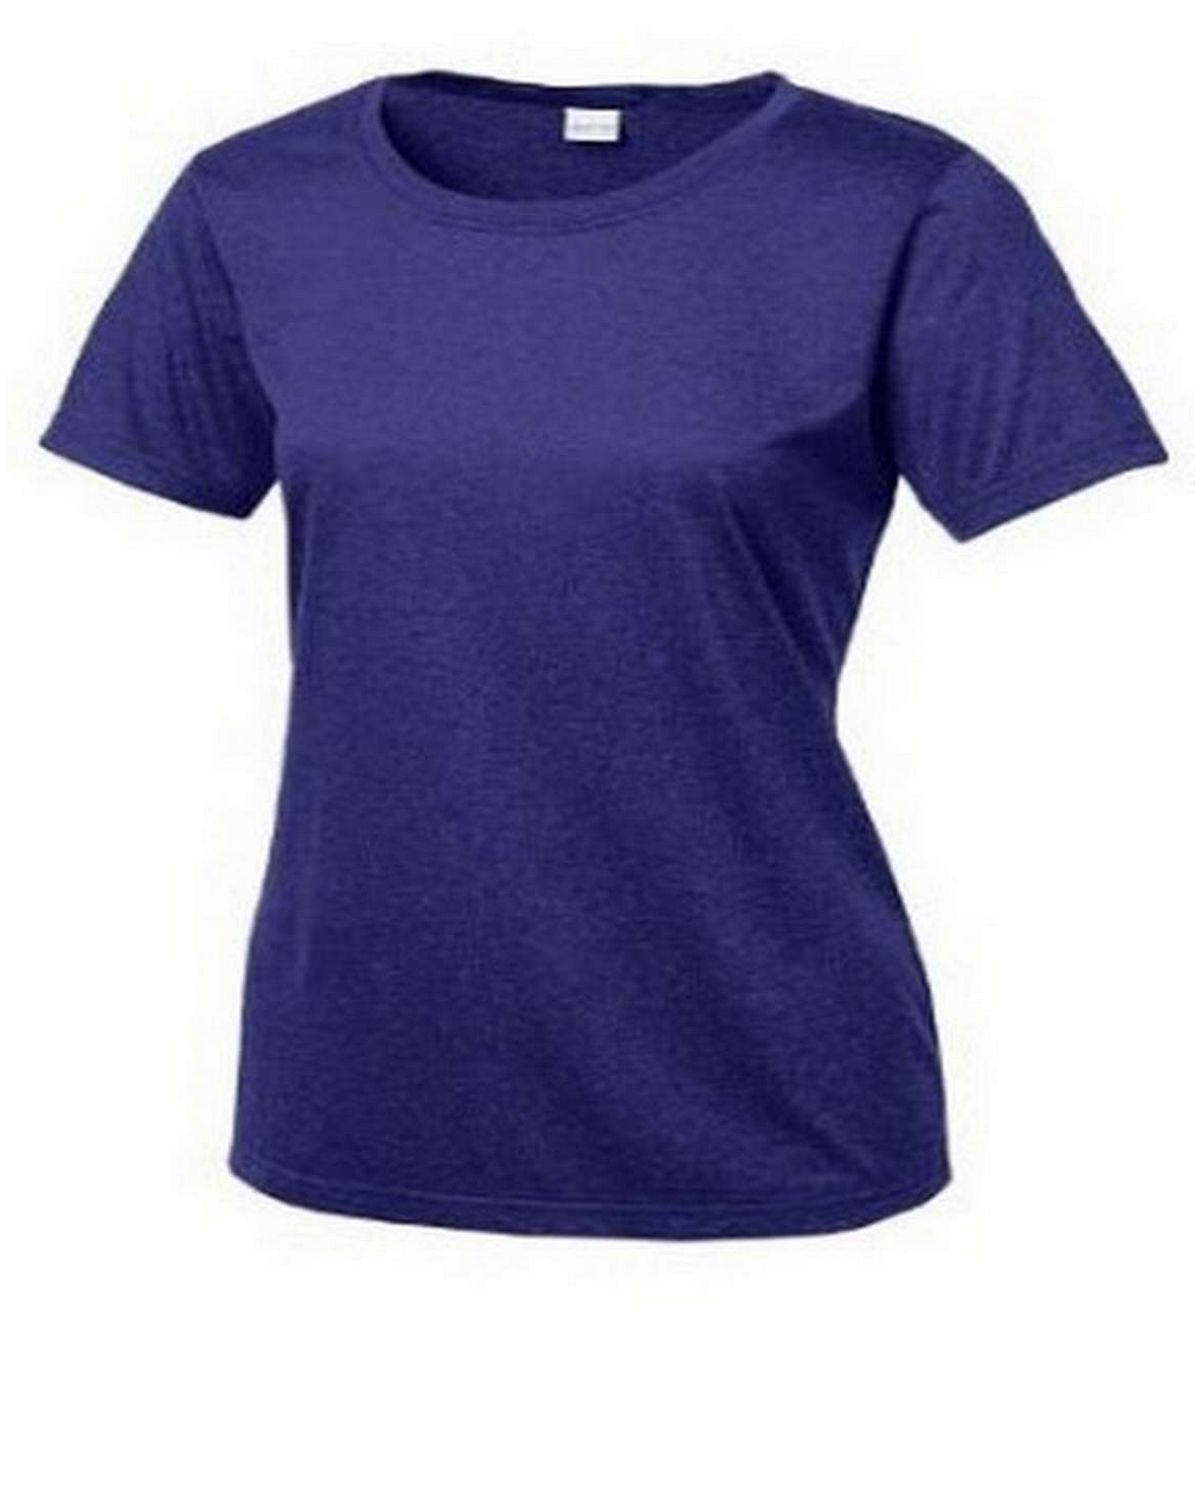 Sport-Tek LST360 Ladies Heather Contender Scoop Neck Tee